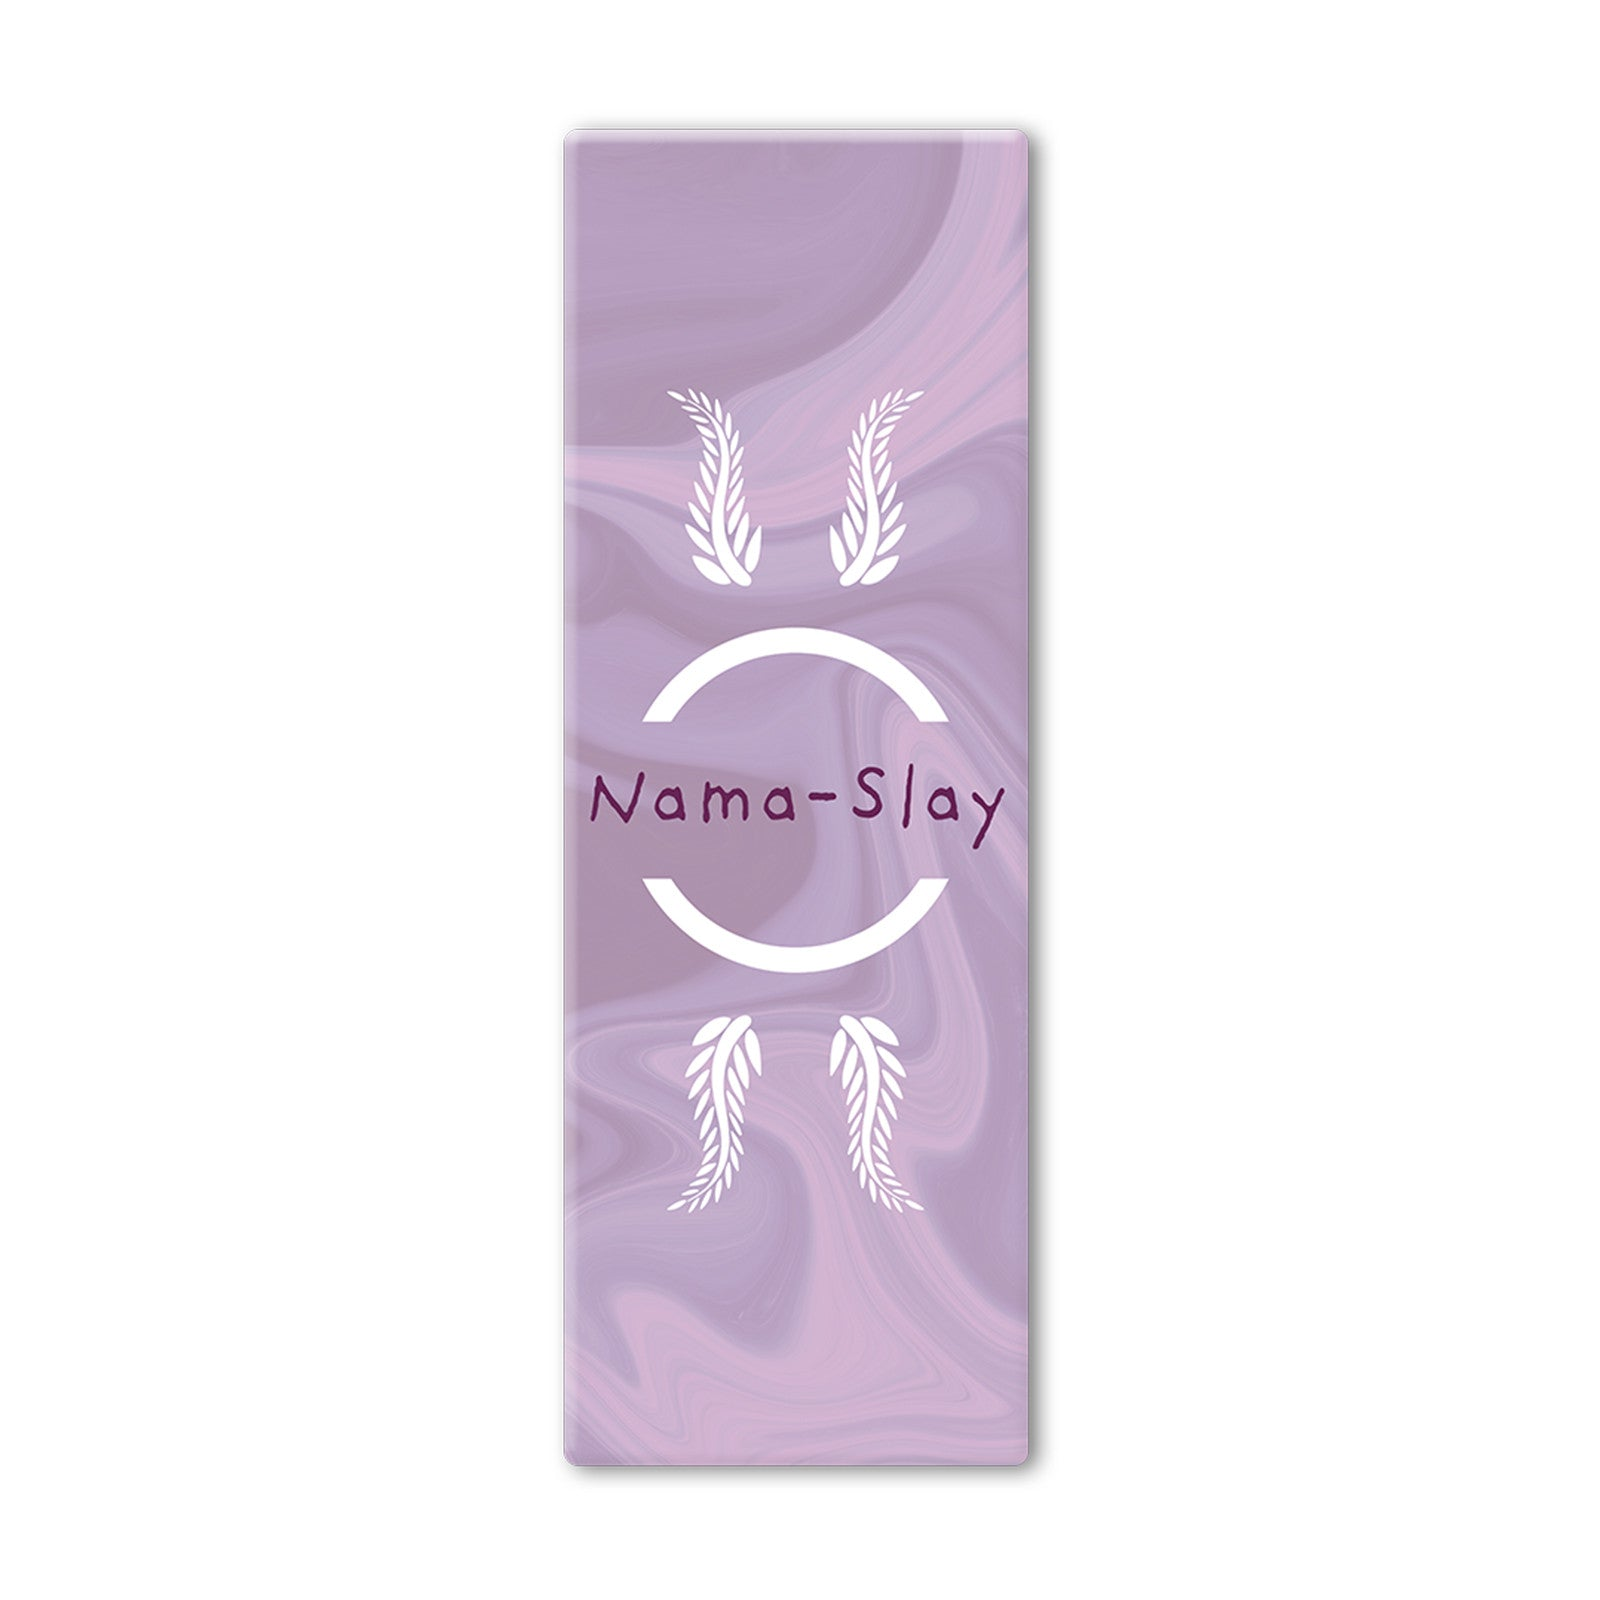 Nama-Slay Purple Yoga Mat